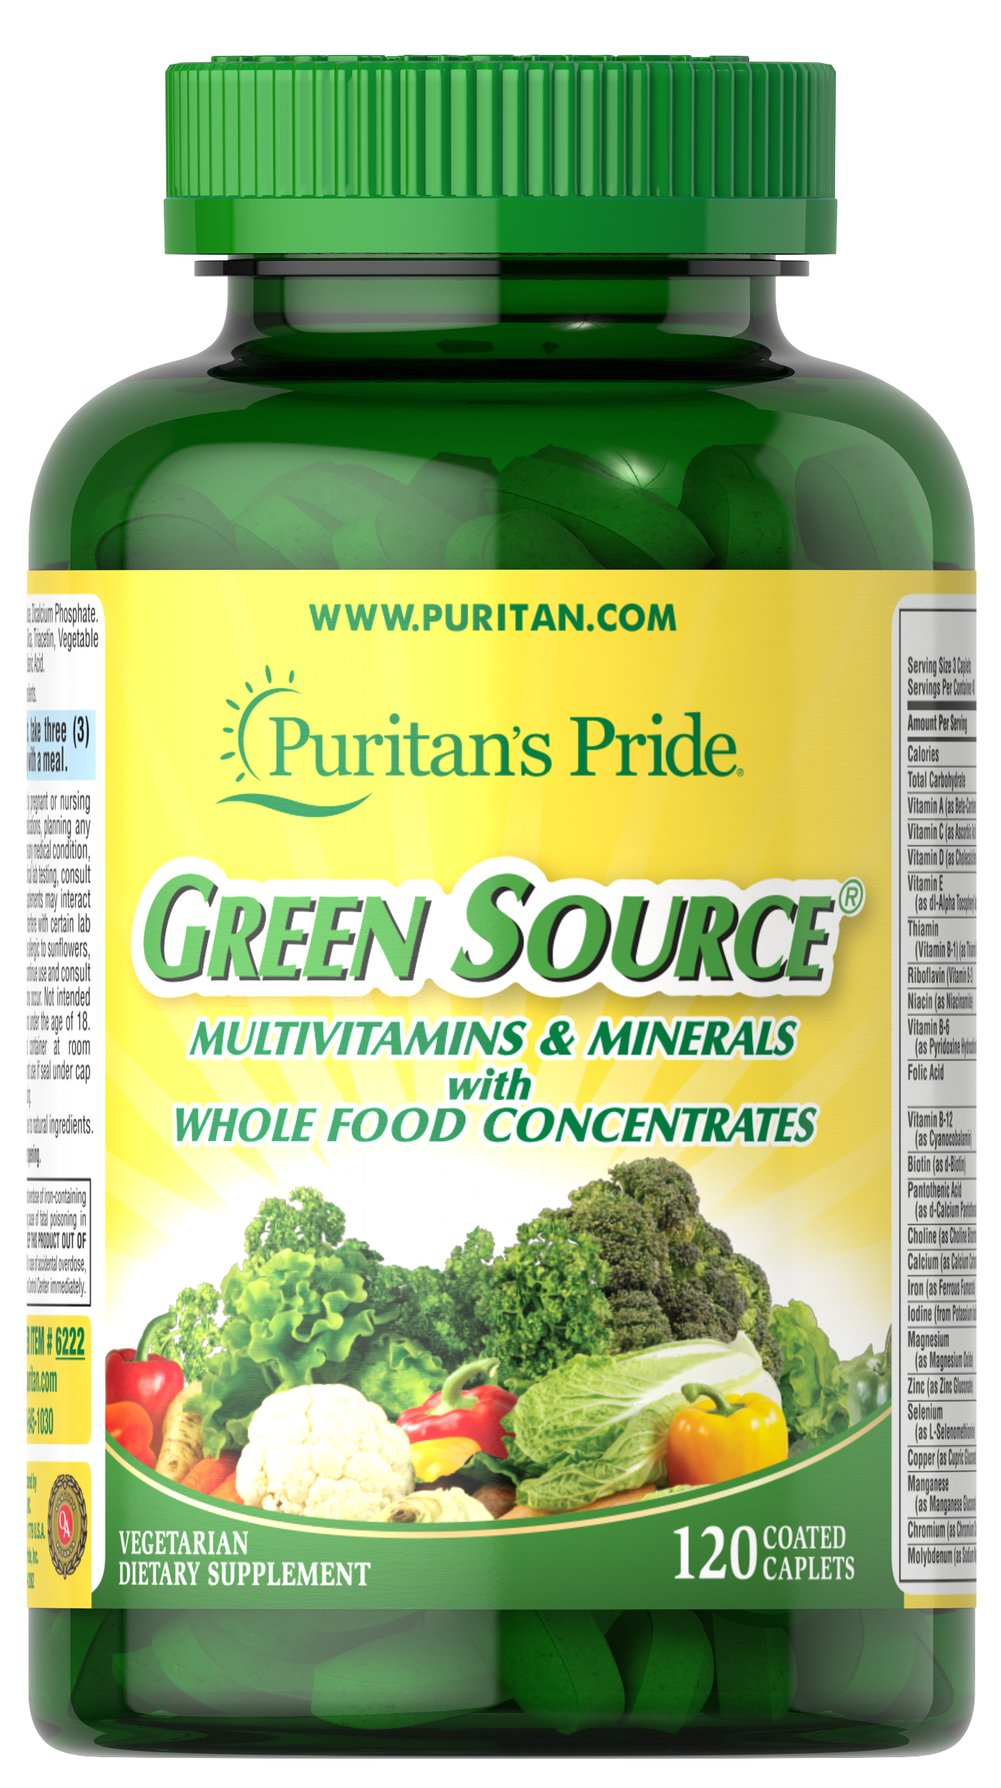 Green Source® Multivitamin & Minerals <p>This concentrated formula contains potent food source nutrients to provide essential vitamins, minerals, enzymes and amino acids. It also provides all the naturally occurring active constituents of whole foods.</p> 120 Caplets  $35.99